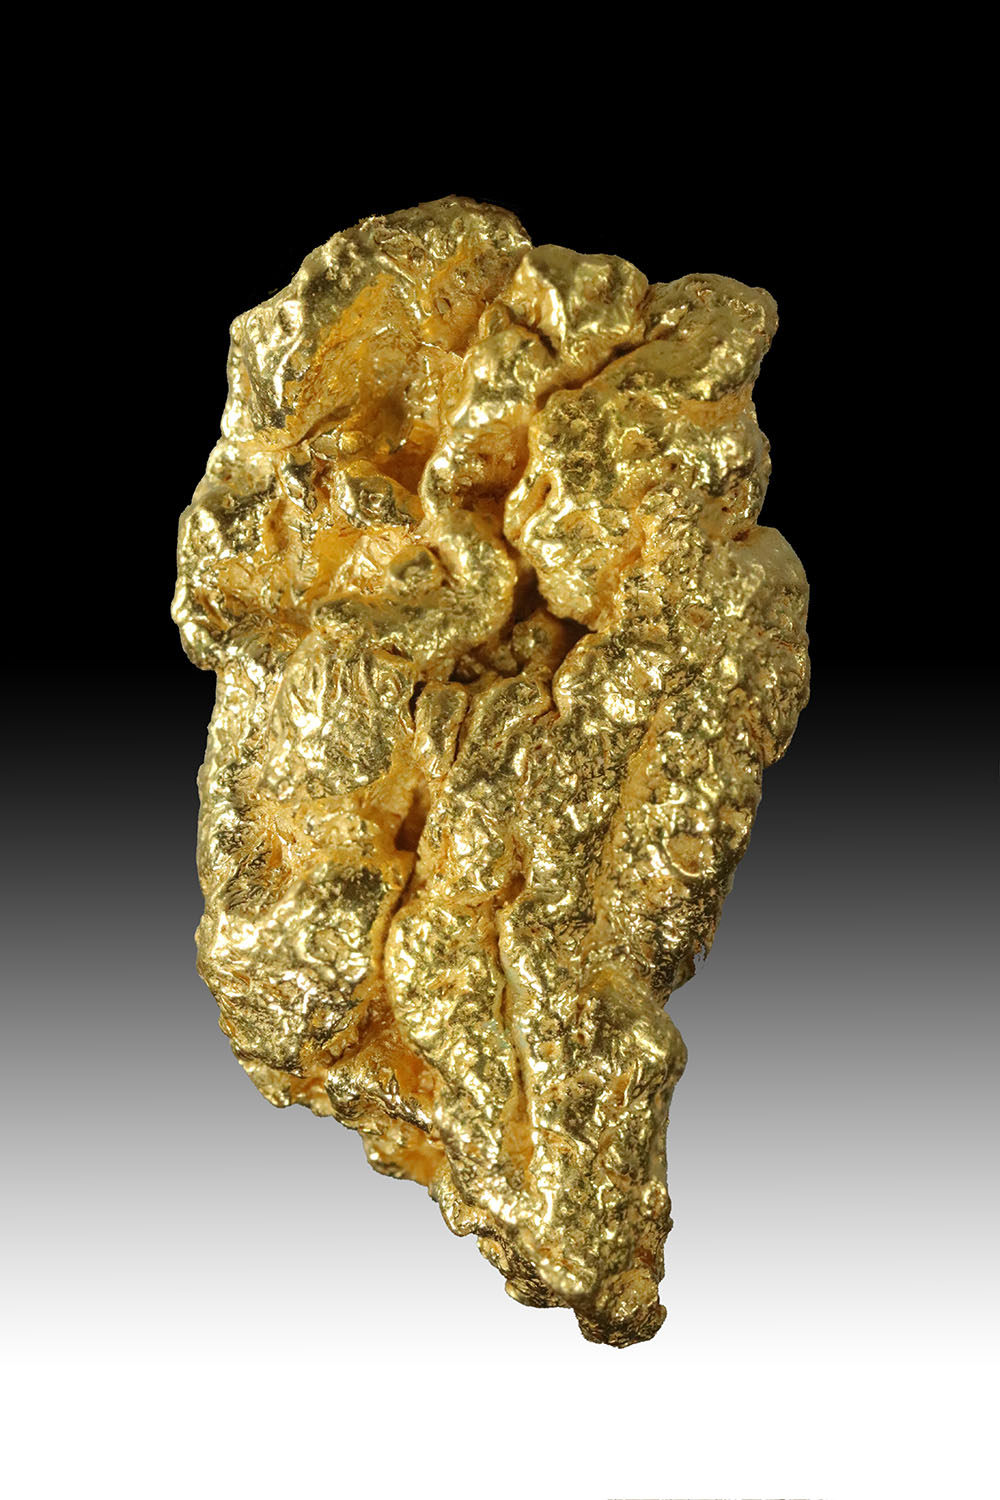 Long and Tappered - Beautiful California Gold nugget